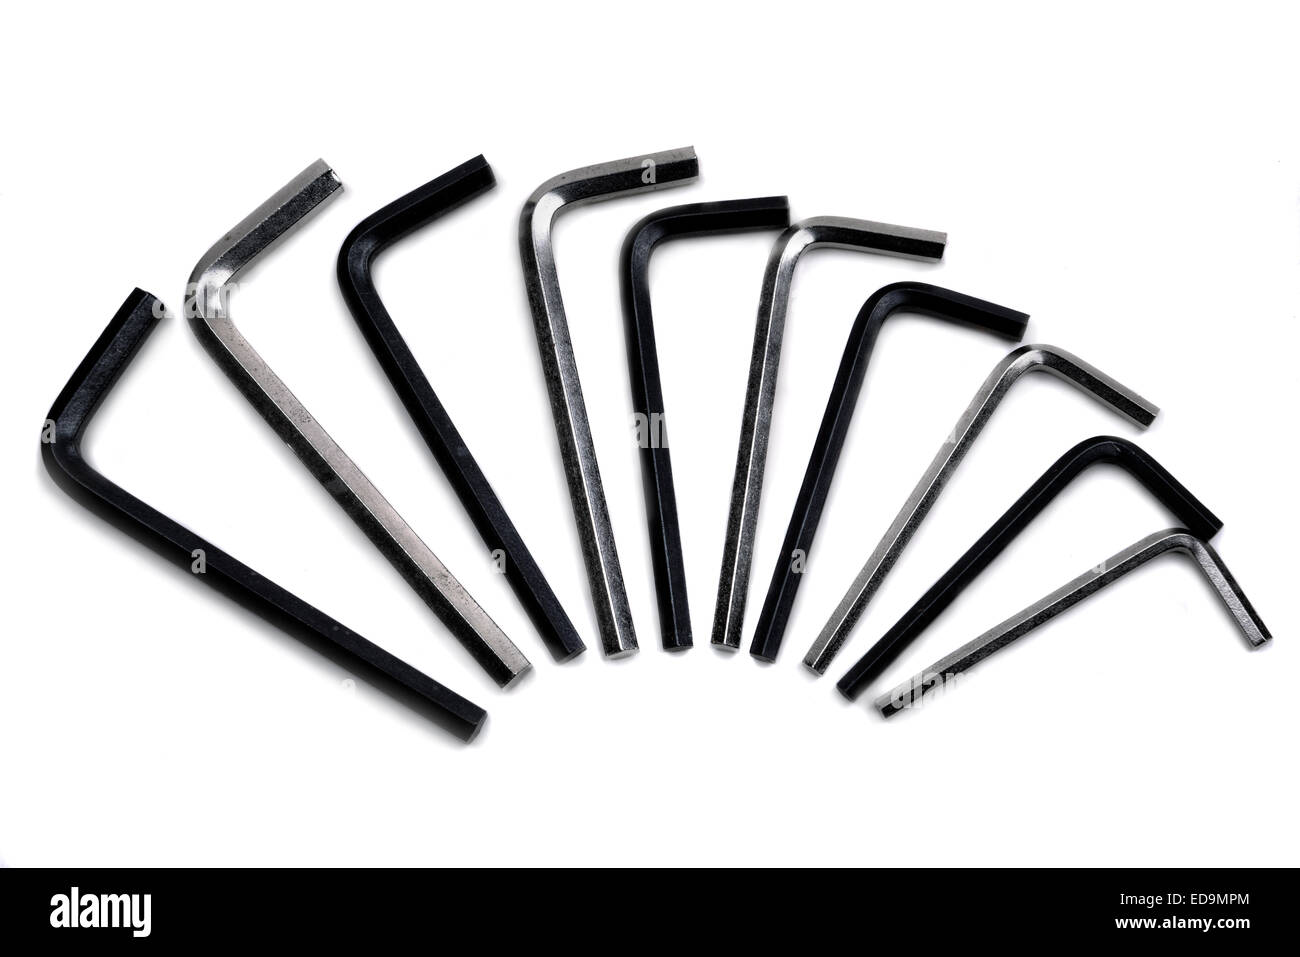 Collection of hex wrench keys in matt black and chrome. - Stock Image